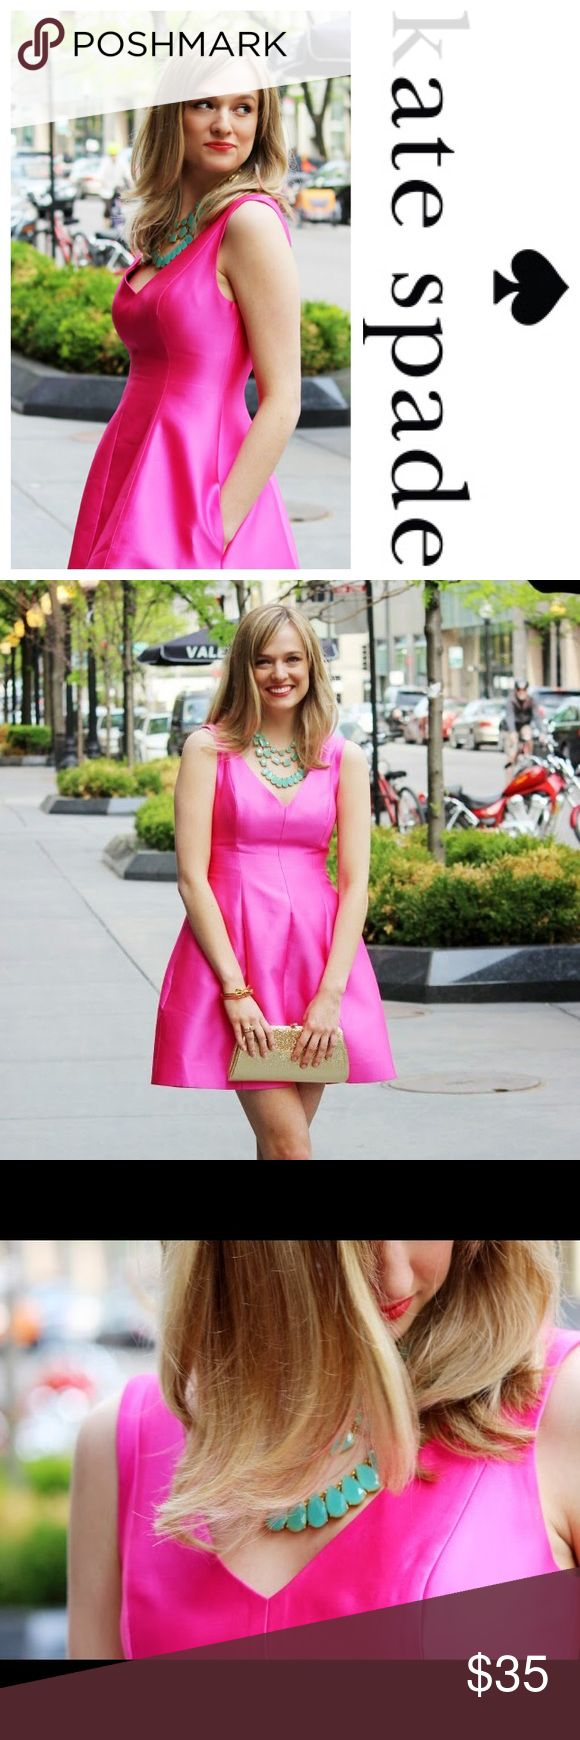 Kate Spade HOT pink mini dress Sexy and elegant dress by Kate Spade. EXCELLENT condition; NO stains, tears, rips, snags. kate spade Dresses Mini